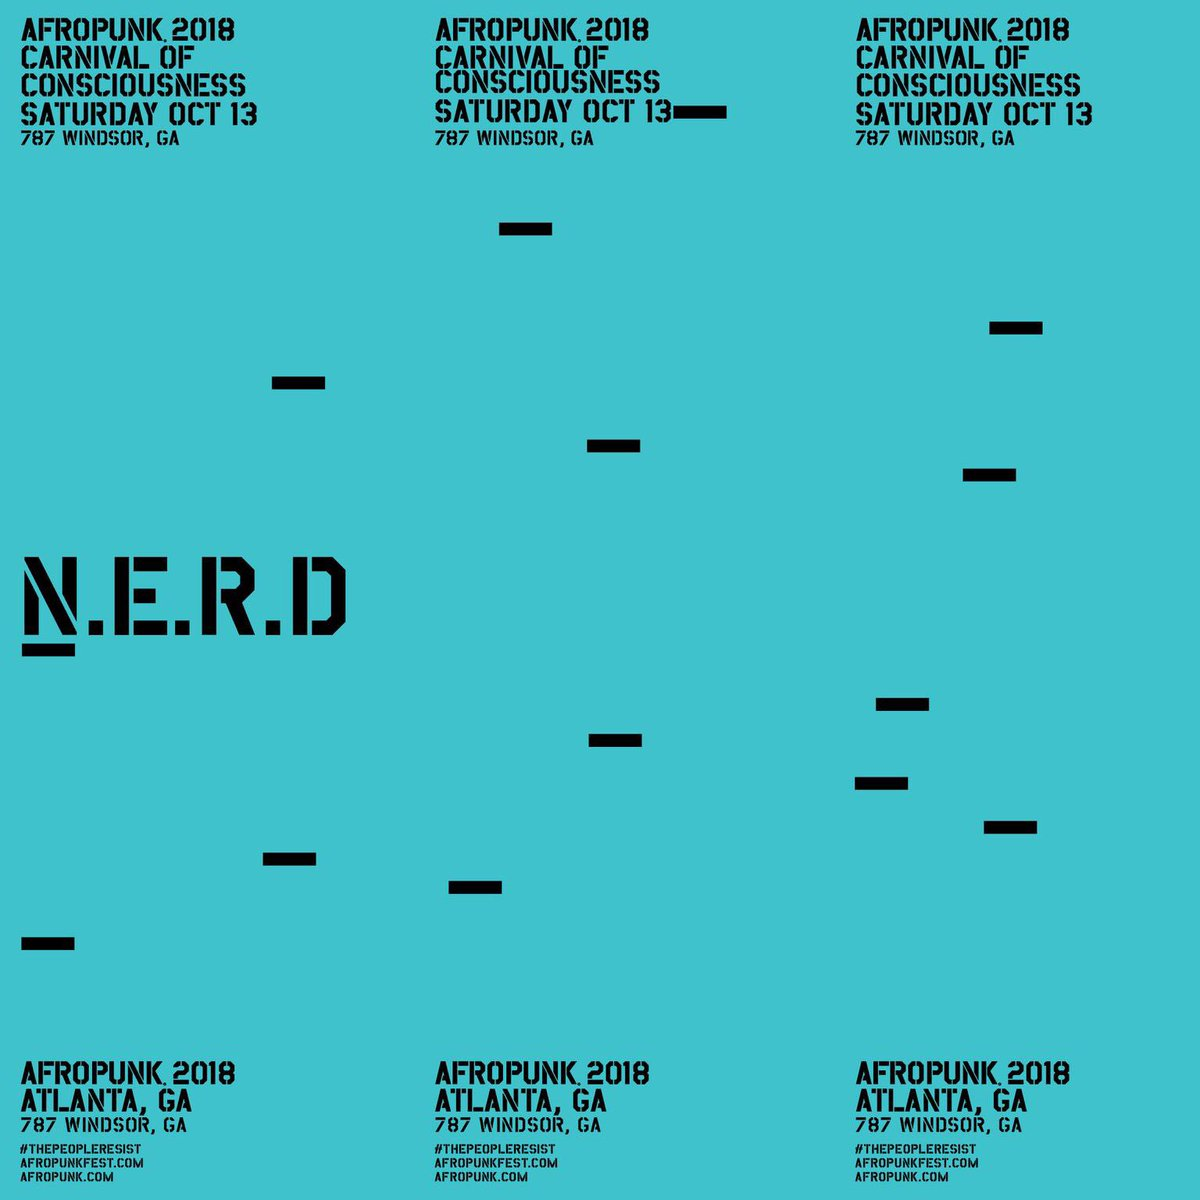 RT @NERDarmy: TOMORROW!!! ????Atlanta????  @afropunk #NOONEEVERREALLYDIES???????? Tix Available At https://t.co/OIIPEf04ie https://t.co/ShszW6SvXO